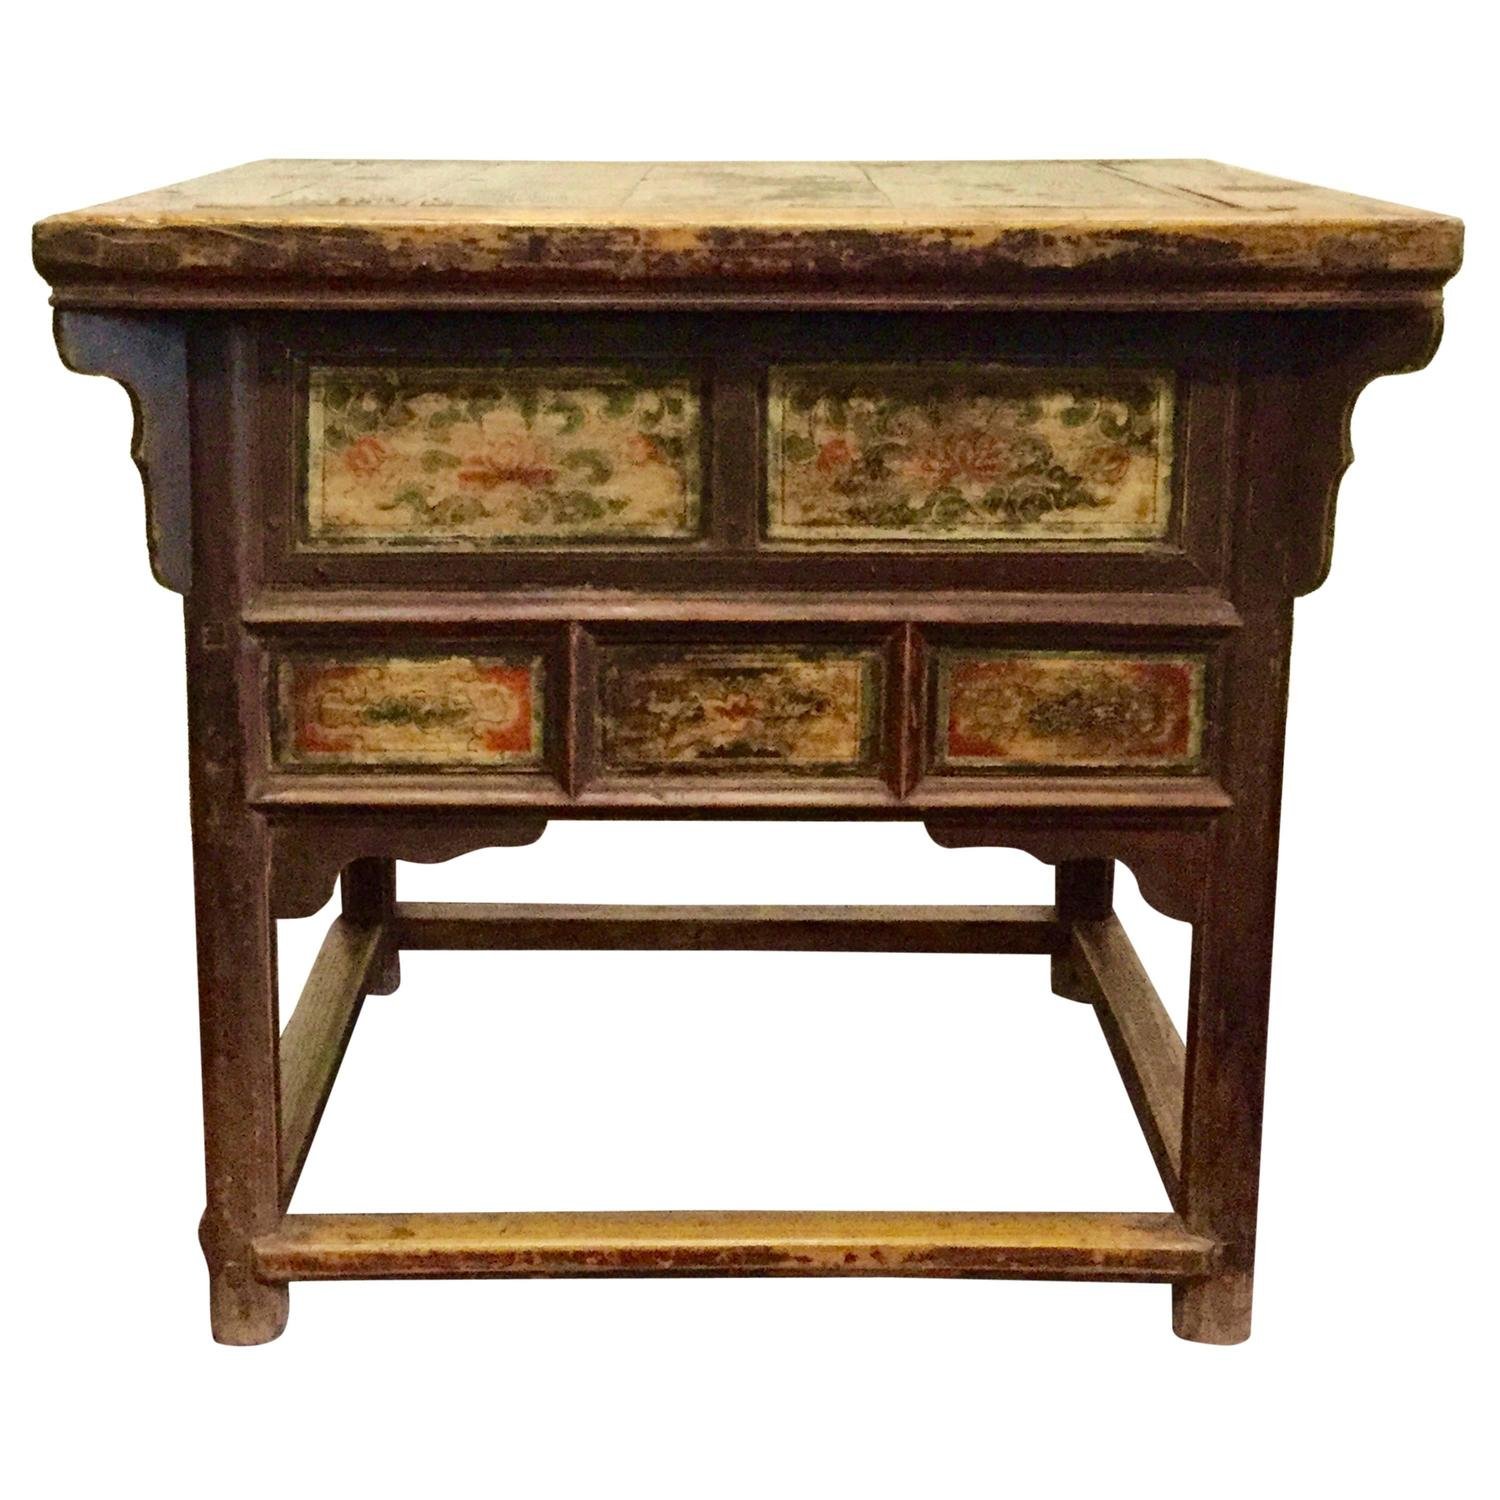 Number 1 Chinese Kitchen: 19th Century Chinese Square Kitchen Table, Walnut, Hand